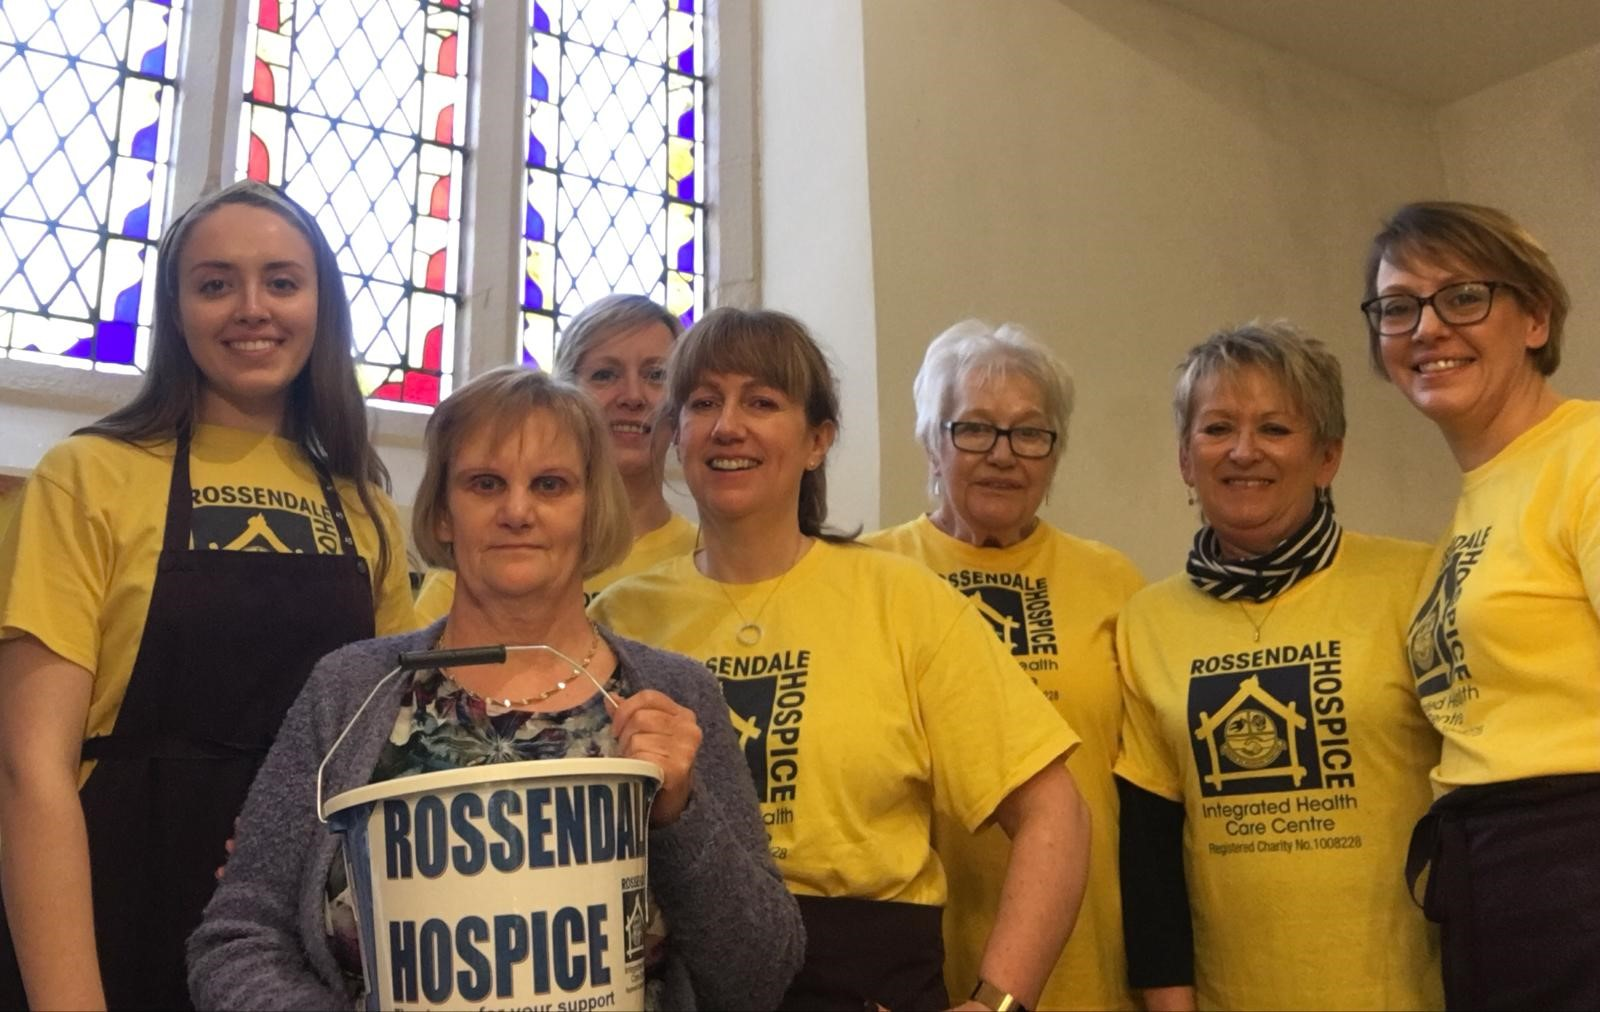 Refectory Cafe volunteers wearing Hospice tshirts